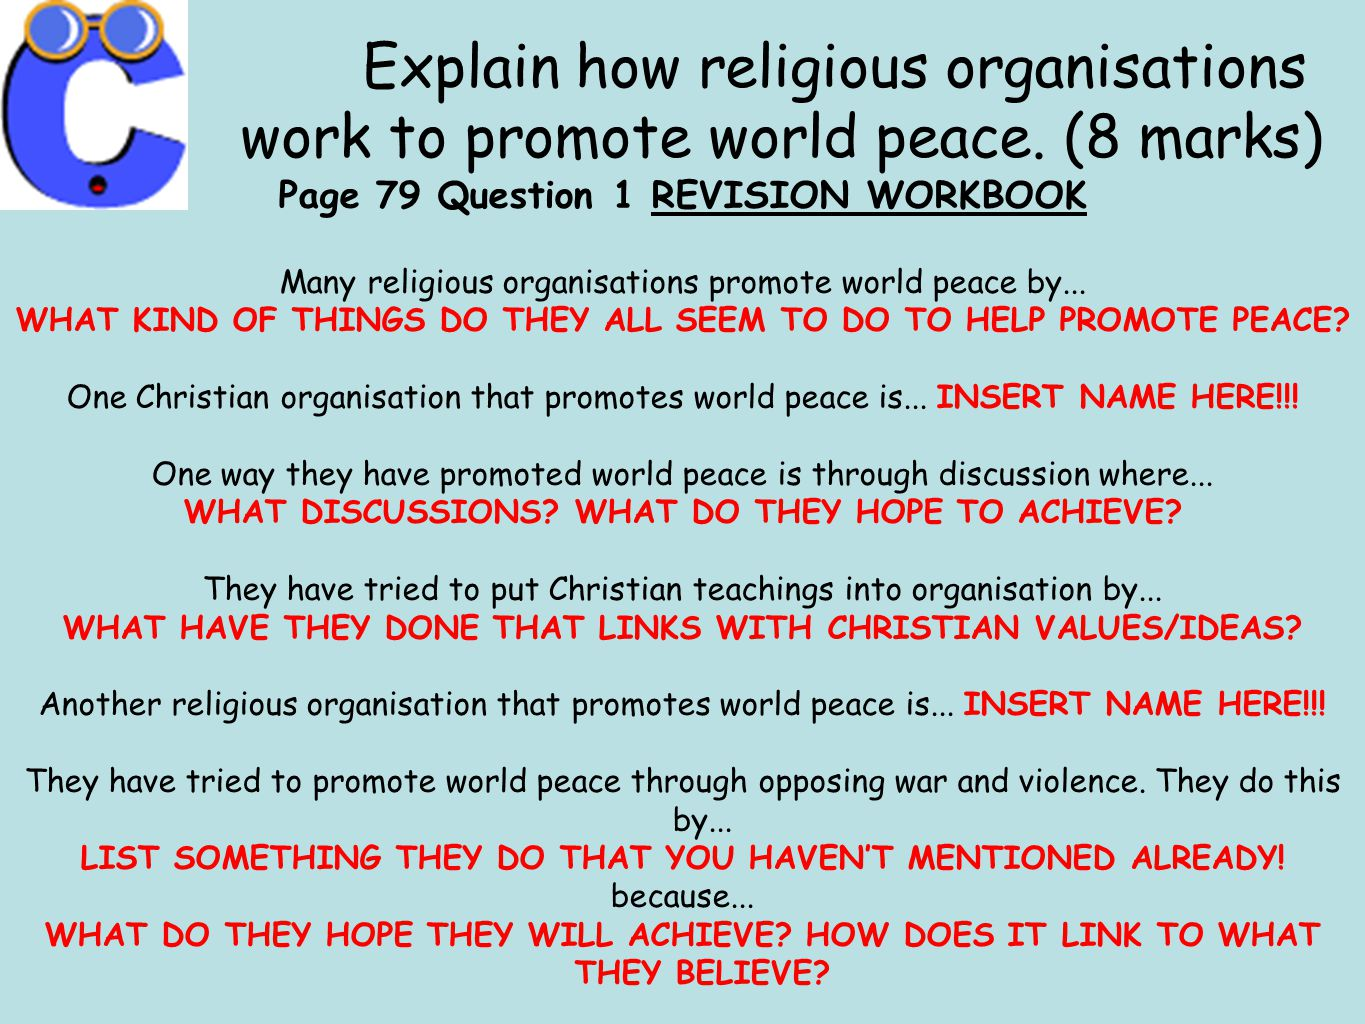 Explain how religious organisations work to promote world peace